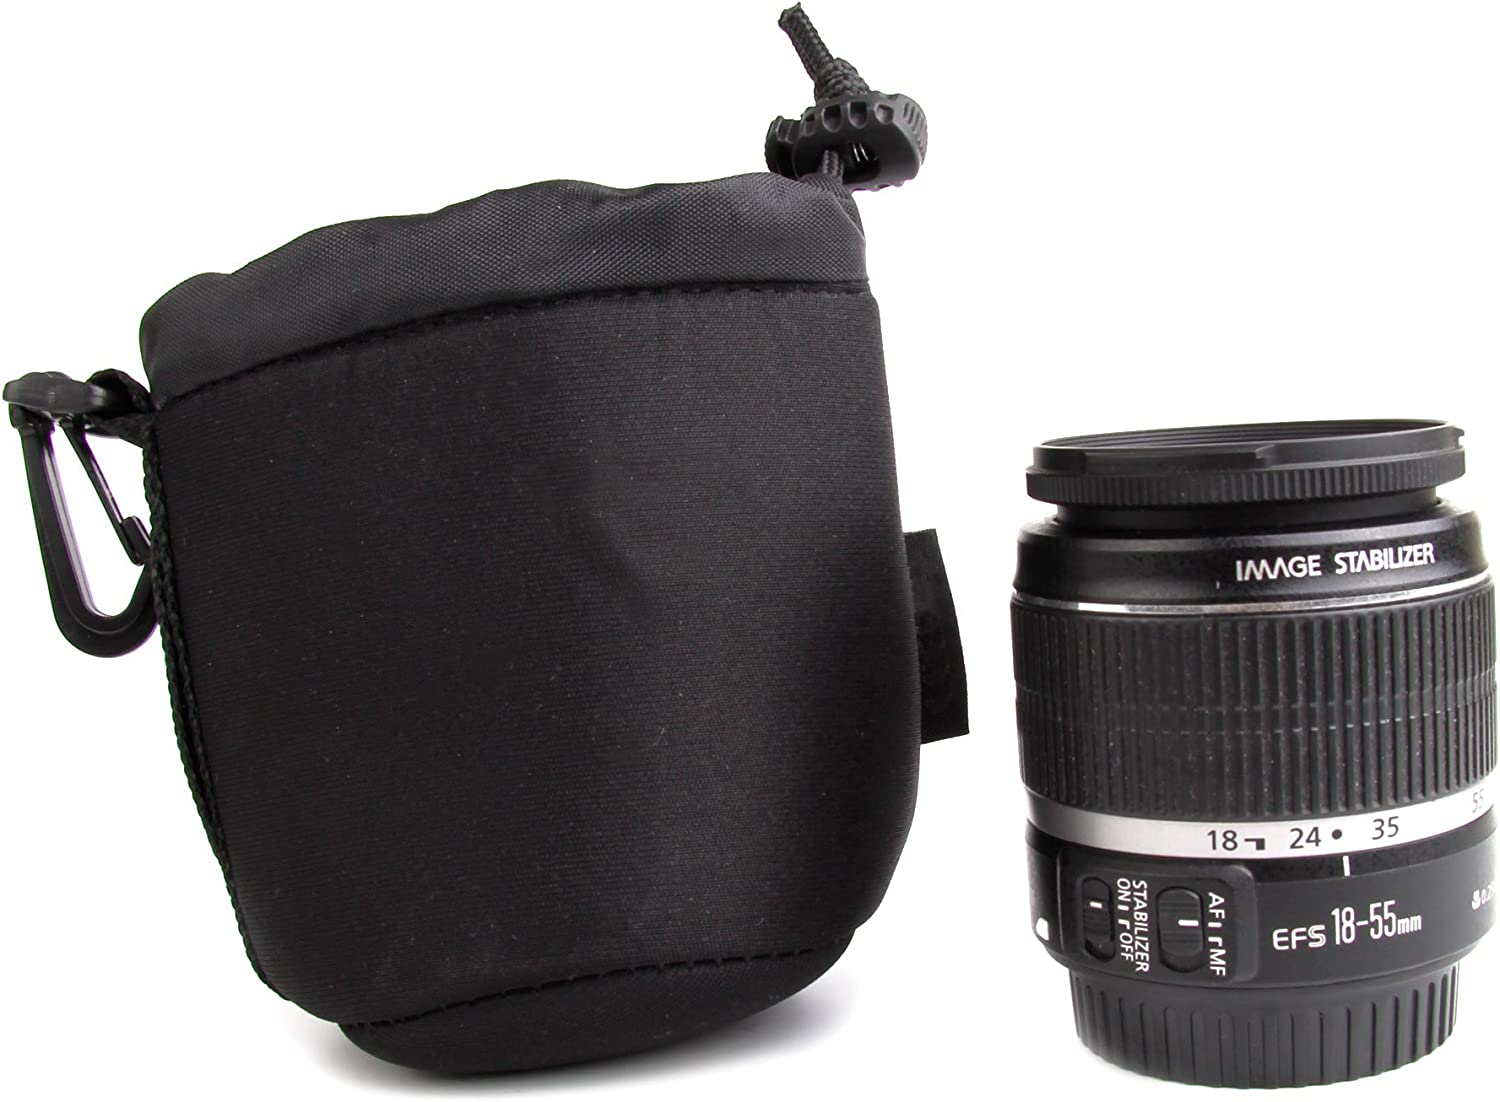 DURAGADGET Padded Lens Pouch Case Compatible with Pentax SMC DA 18-55mm//50mm f//1.8 SMC DA Lenses